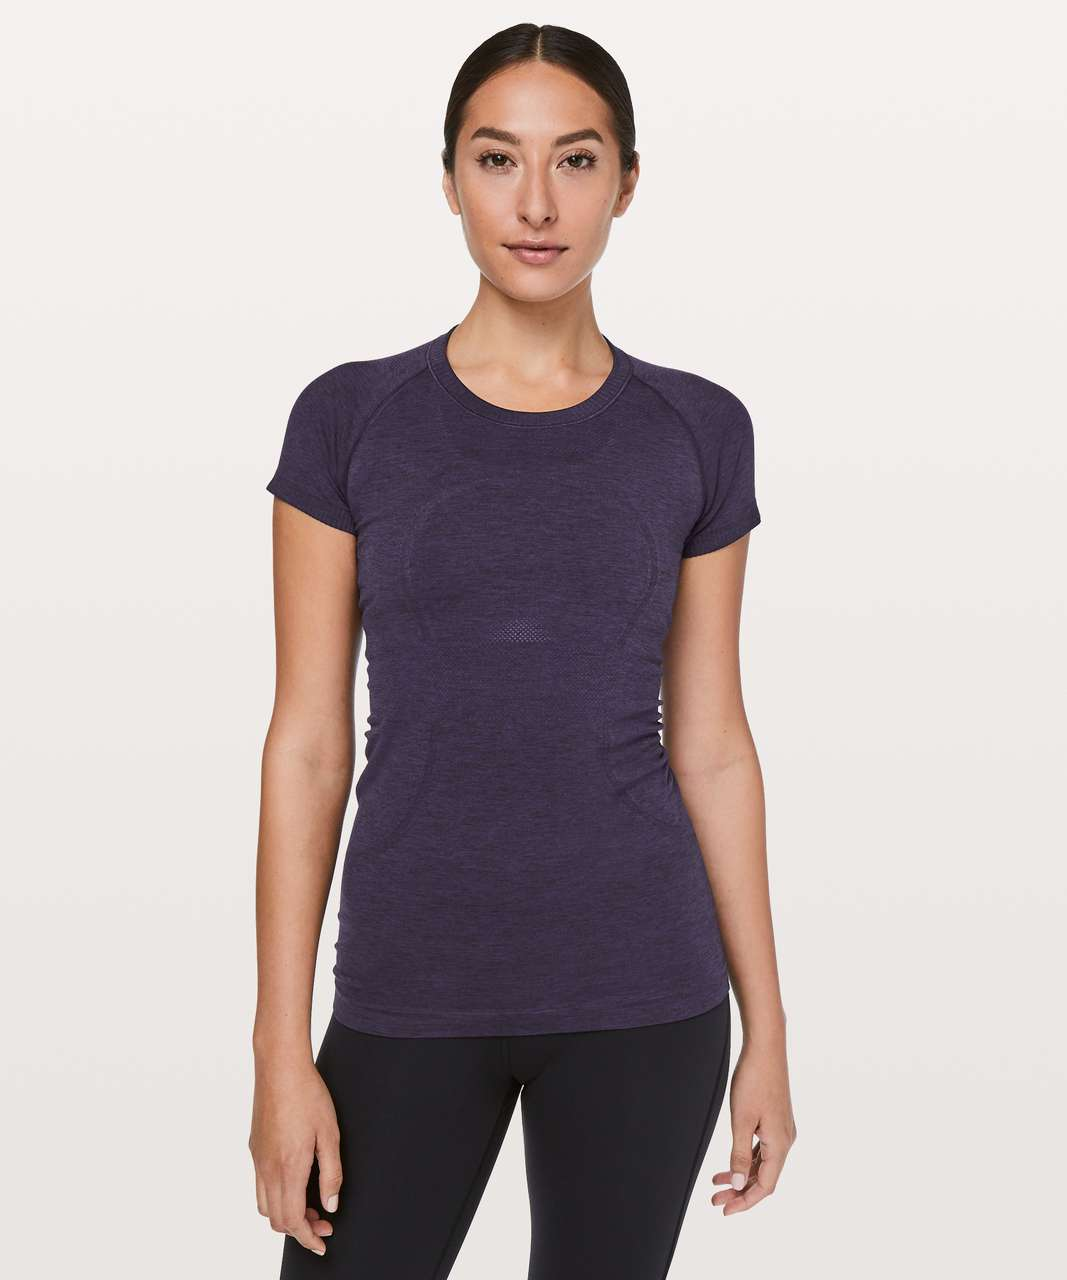 Lululemon Swiftly Tech Short Sleeve Crew - Dark Court Purple / Black